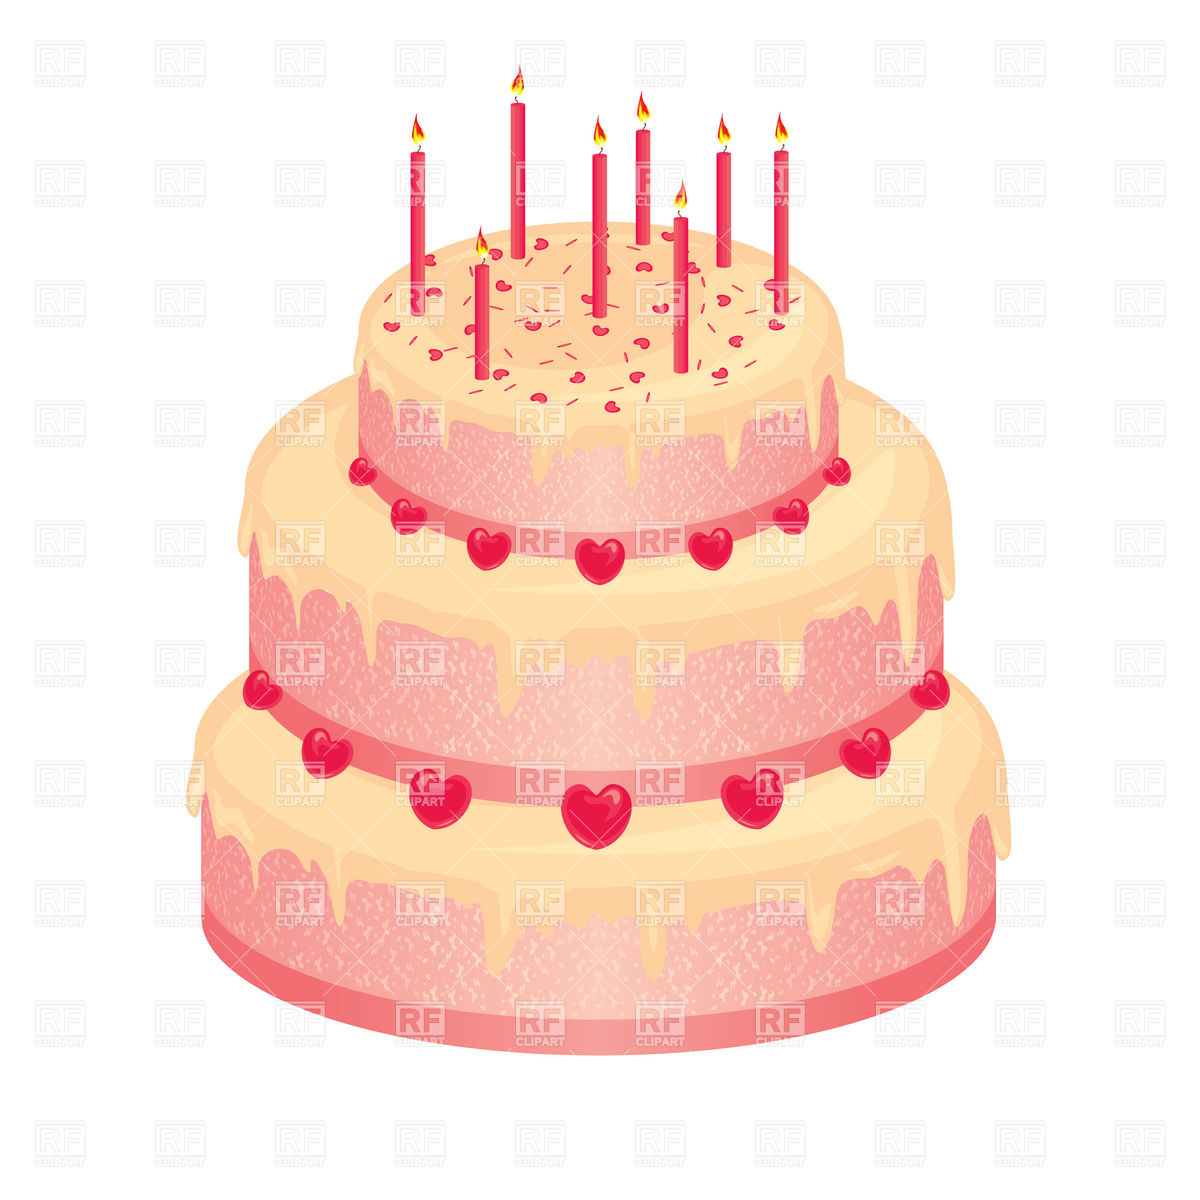 Birthday cake candle clipart image free library 70 Birthday Cake Candles Clipart - Clipart Kid image free library